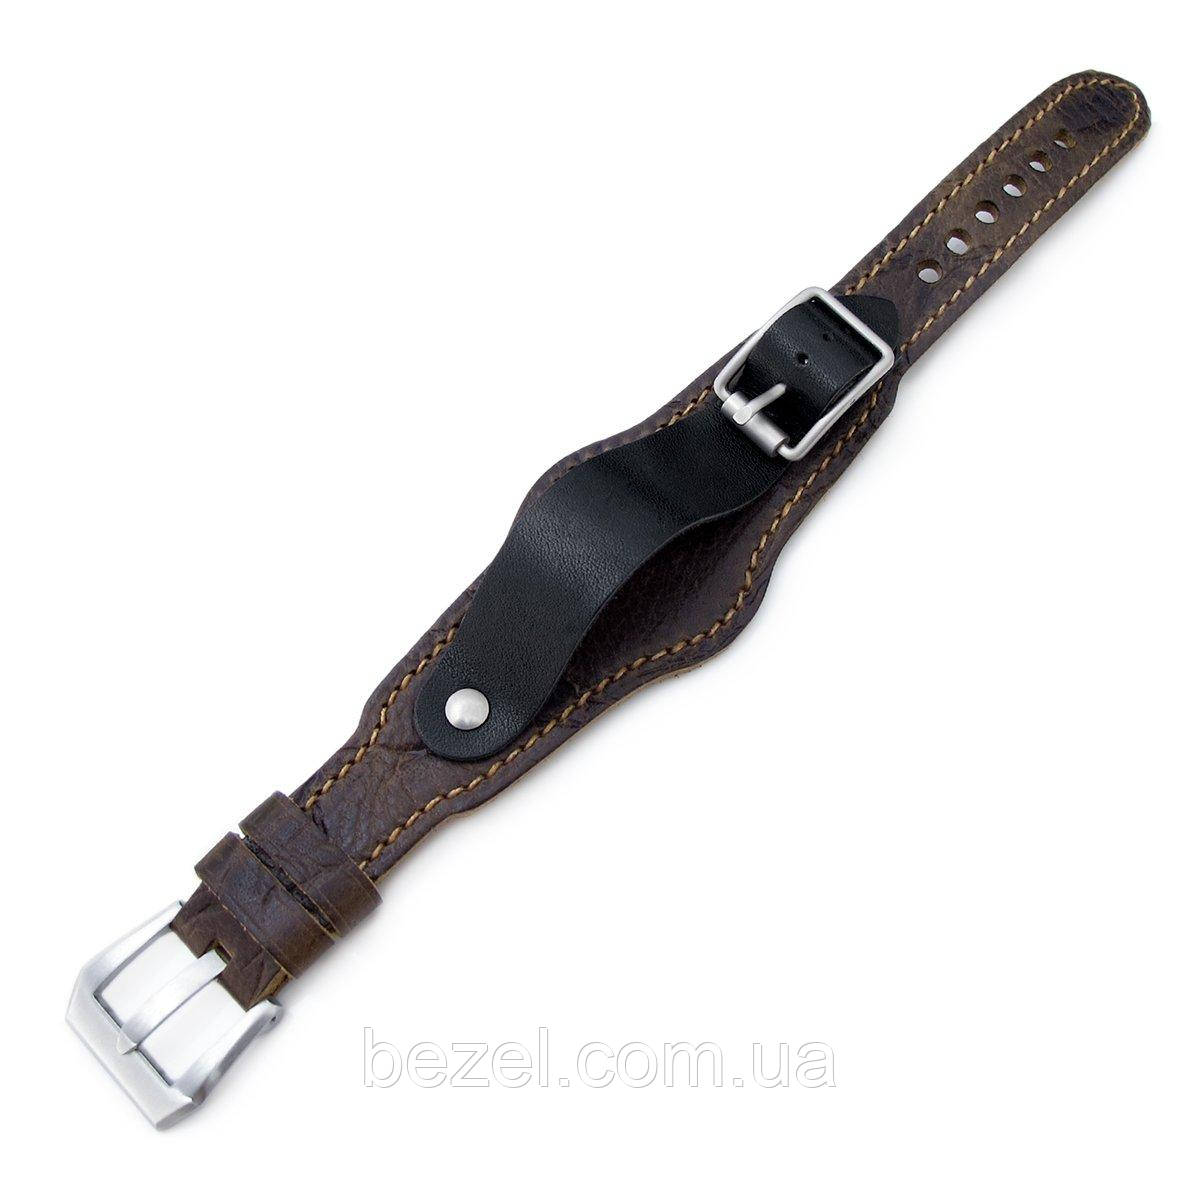 20mm Hezzo Bund Military Style Double-layer Watch Strap, Scratch Brown Pattern Leather of Art